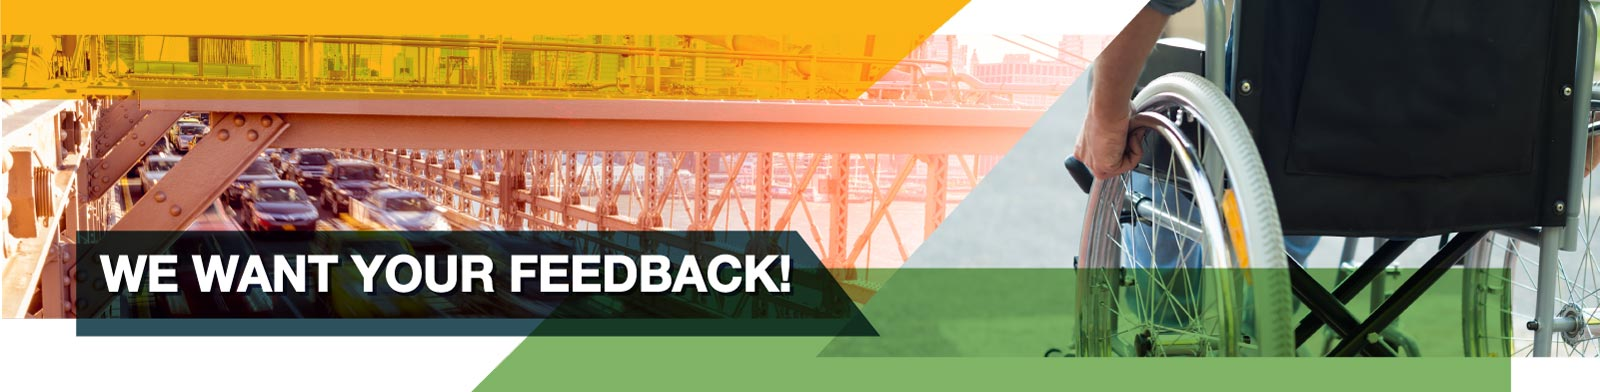 Header Image: We want your feedback!